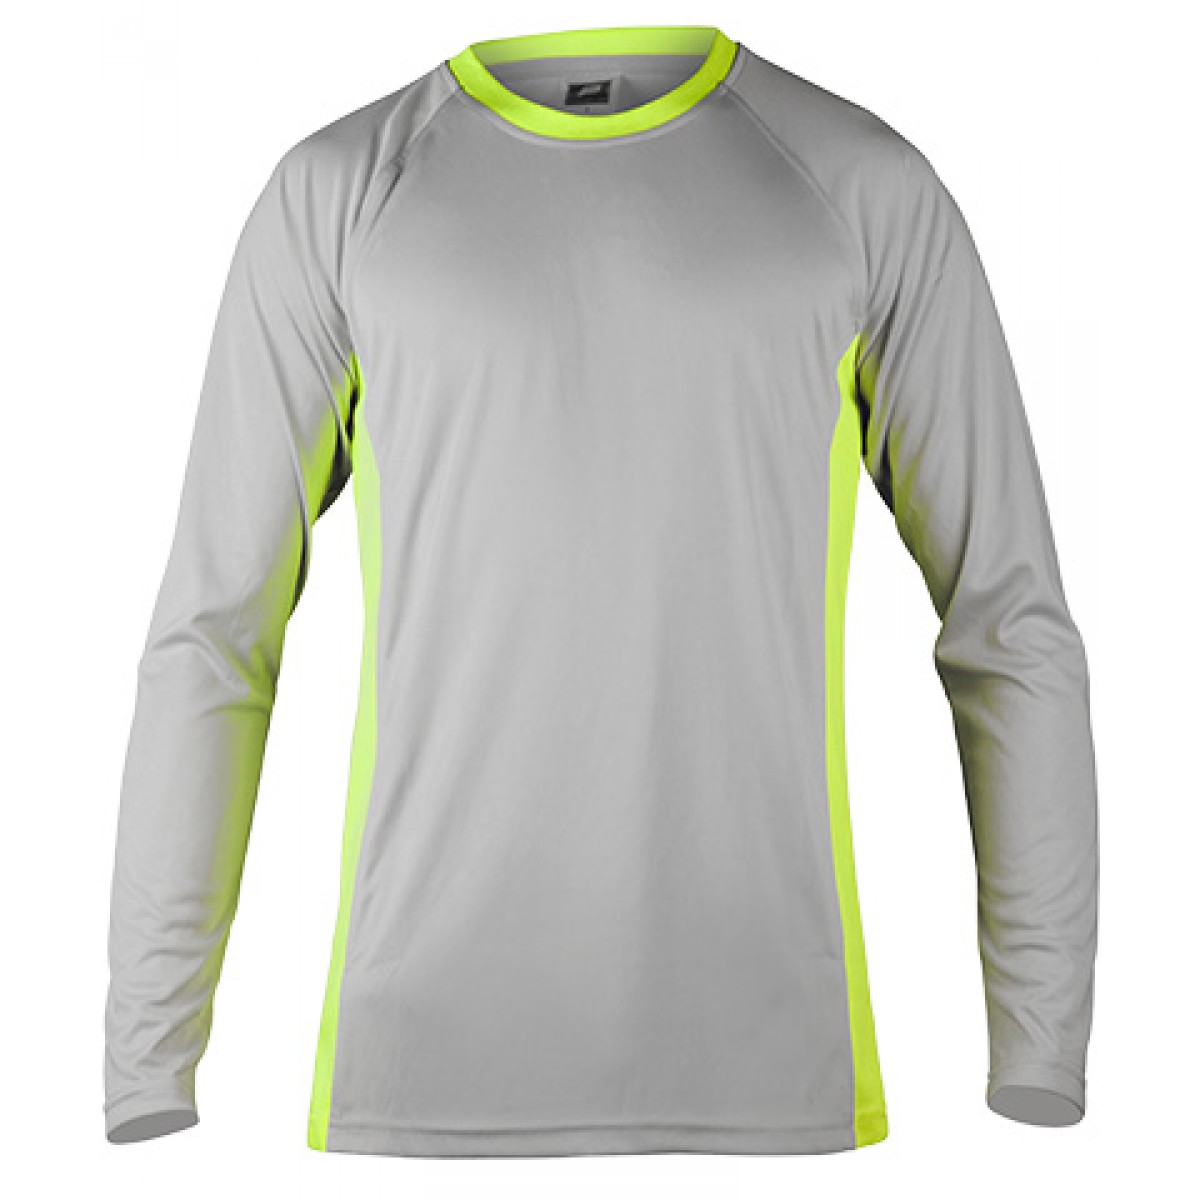 Long Sleeves Performance With Side Insert-Gray/Green-XL